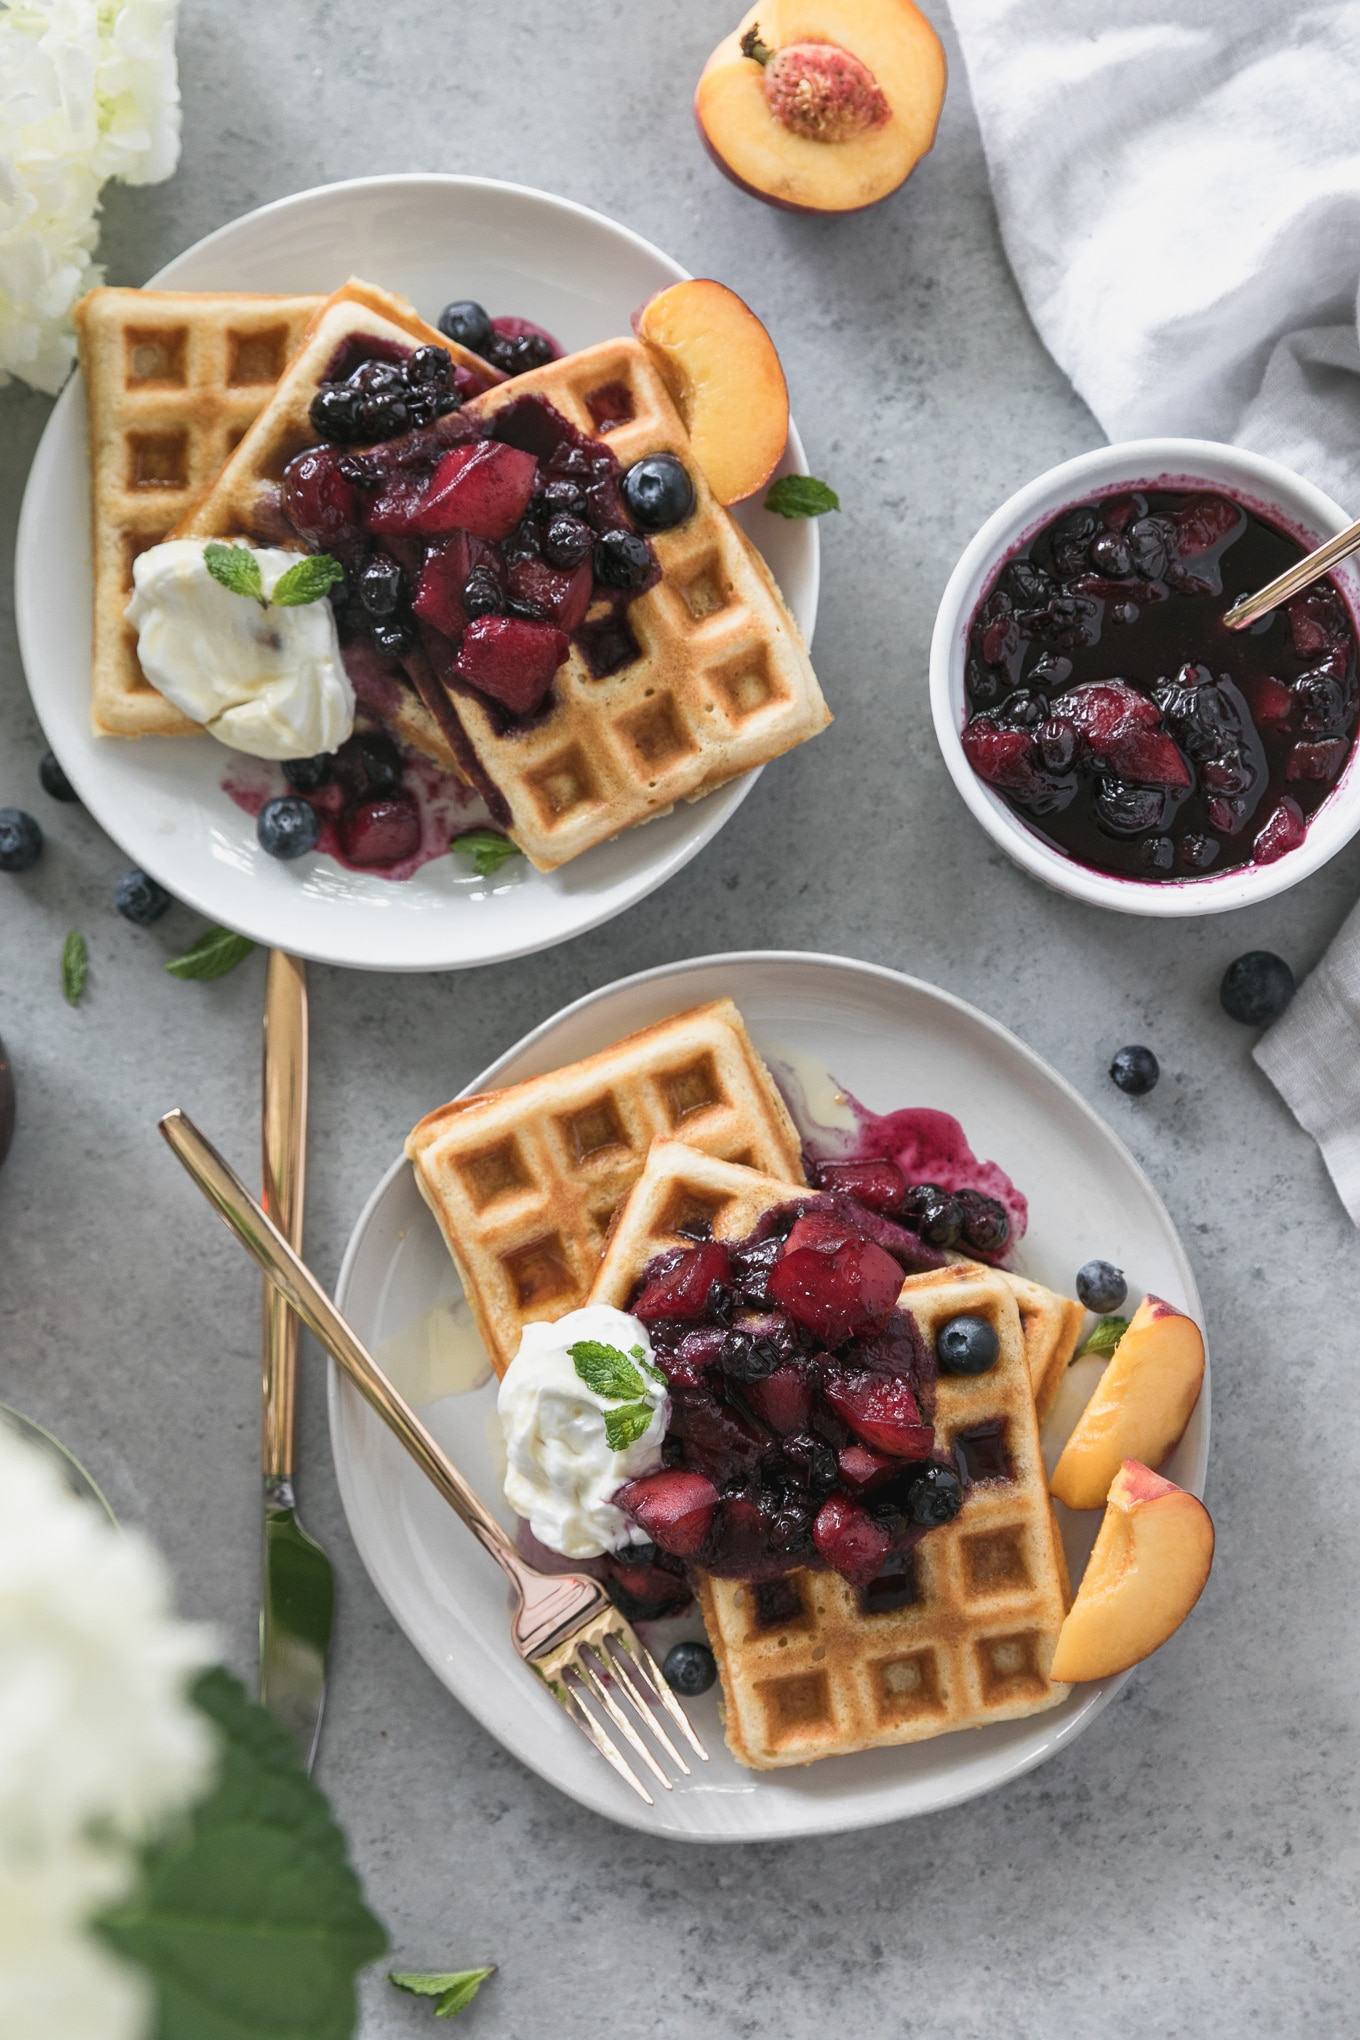 Overhead shot of two plates of waffles with peach blueberry compote on top, a bowl of compote in the top right, and white hydrangeas peeking out in the bottom left